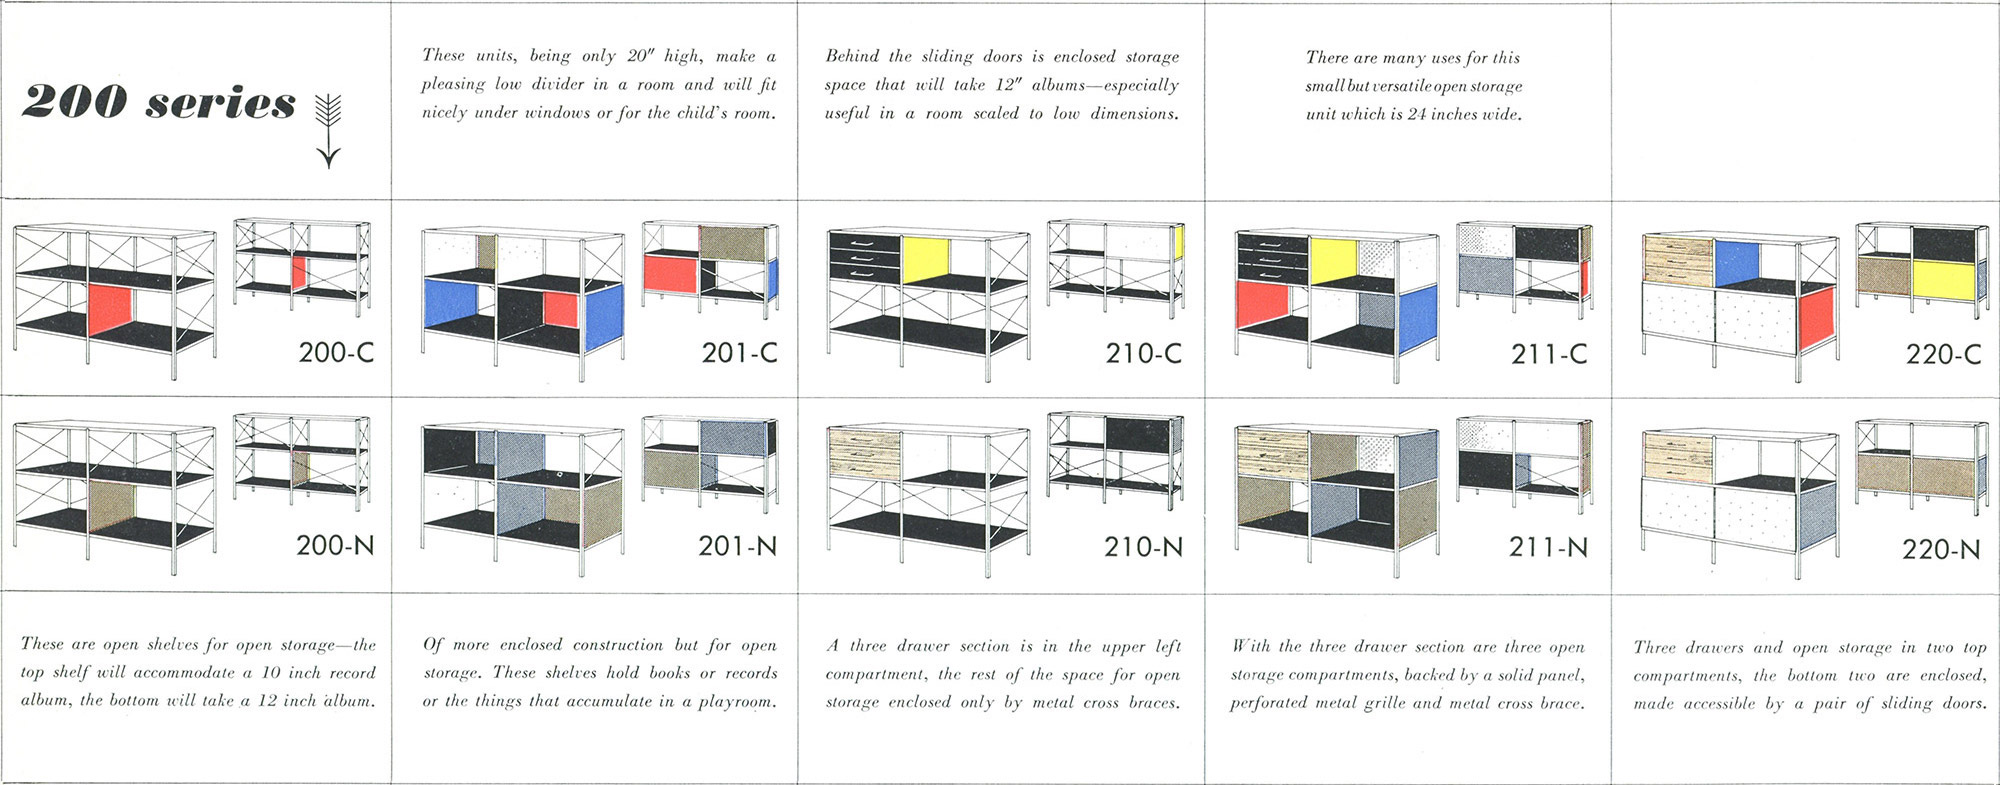 The sheer number of possibilities for the 200 series cabinets means an array of different setups are found in the secondary market. This catalog page showed some of the 200 series units available.